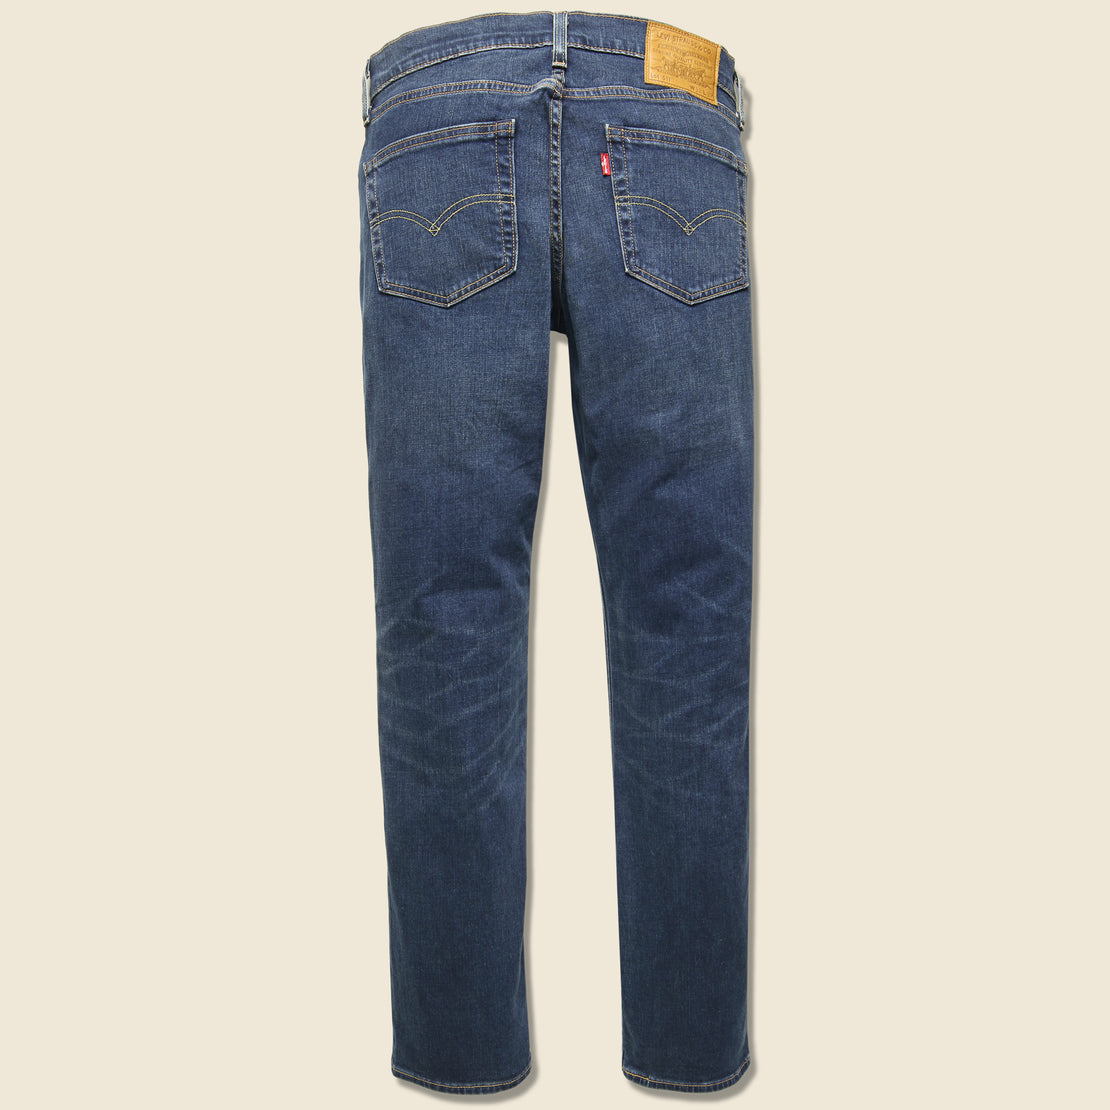 511 Slim Fit Jean - Adriatic